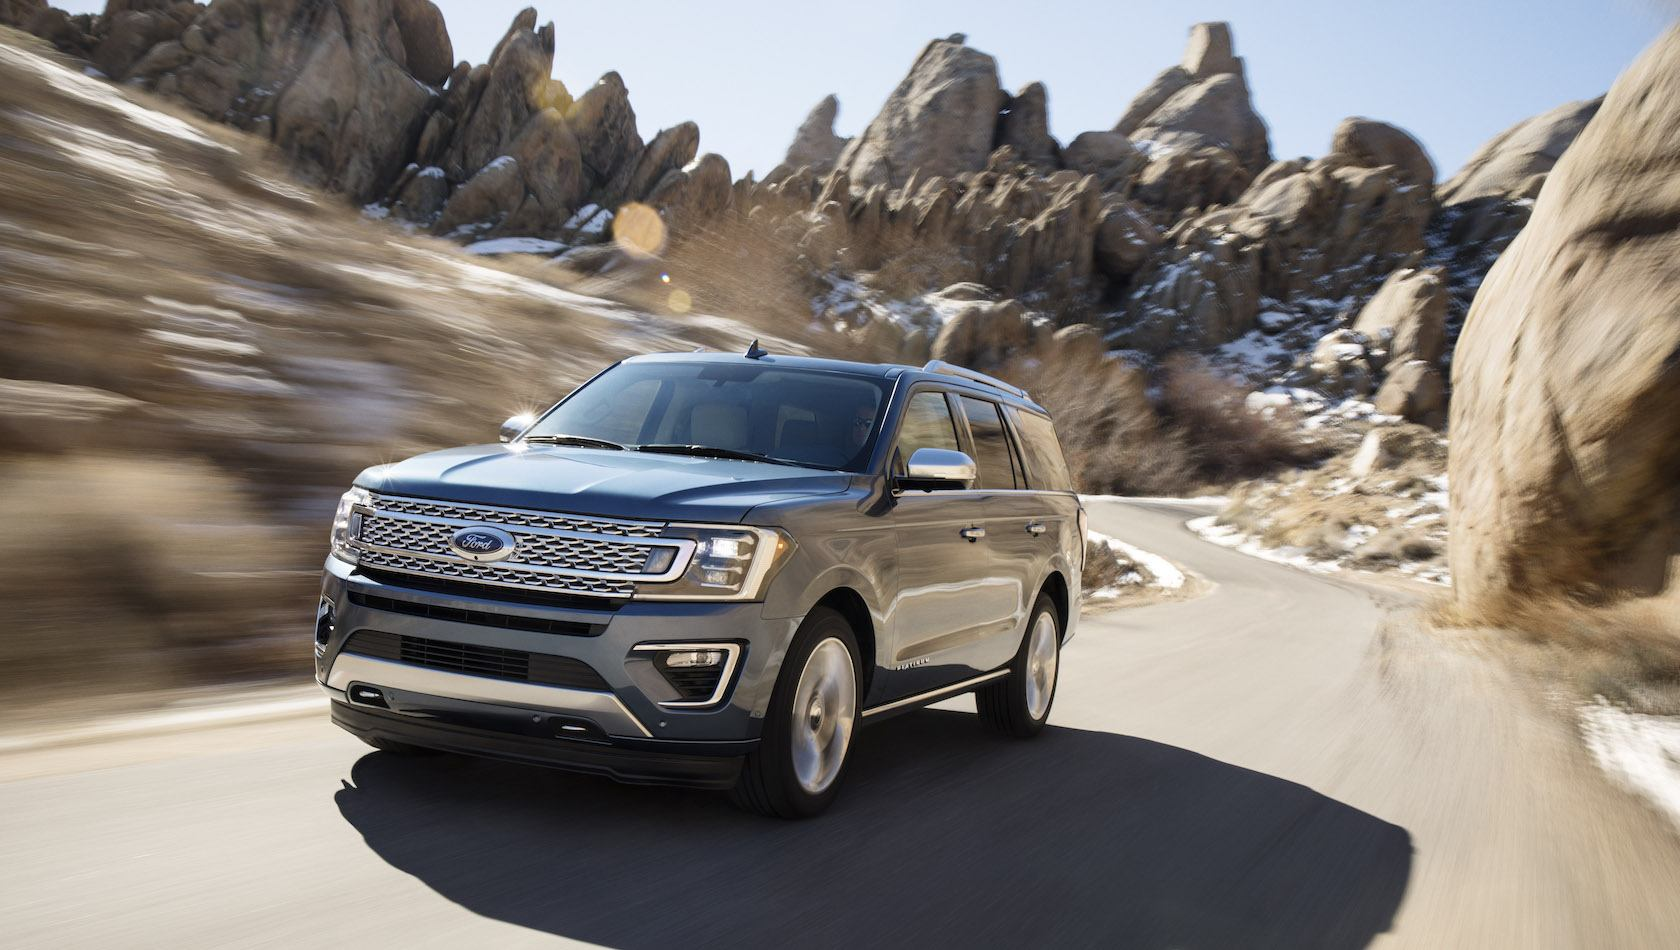 2018 Ford Expedition Gallery - SlashGear